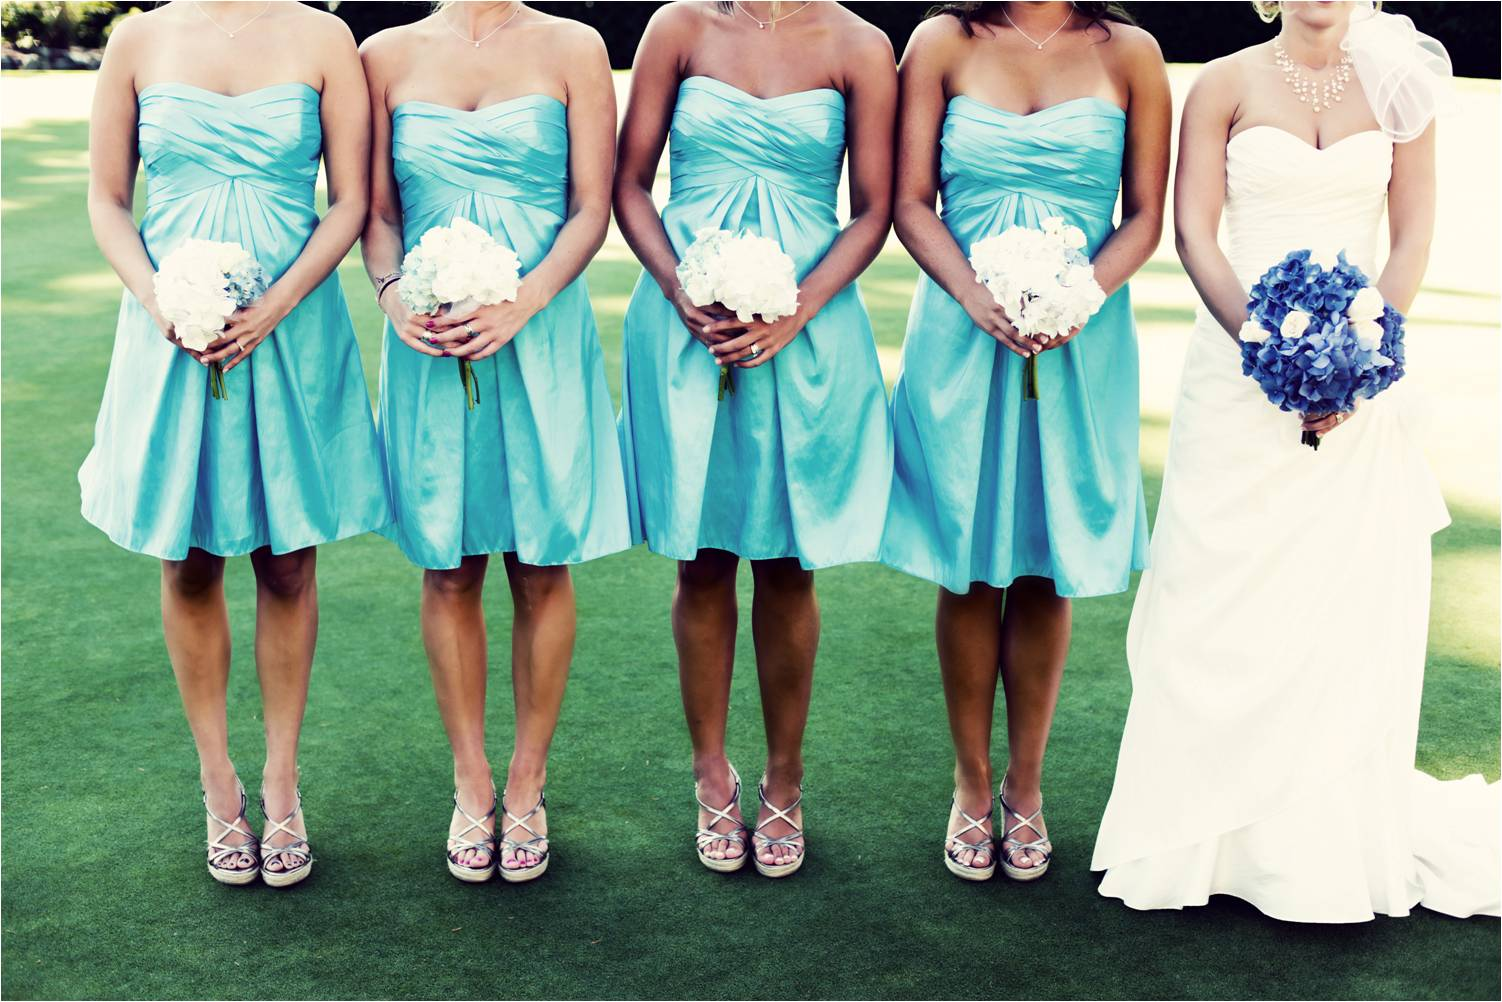 Wedding Bridesmaid Dresses - wedding dress shop